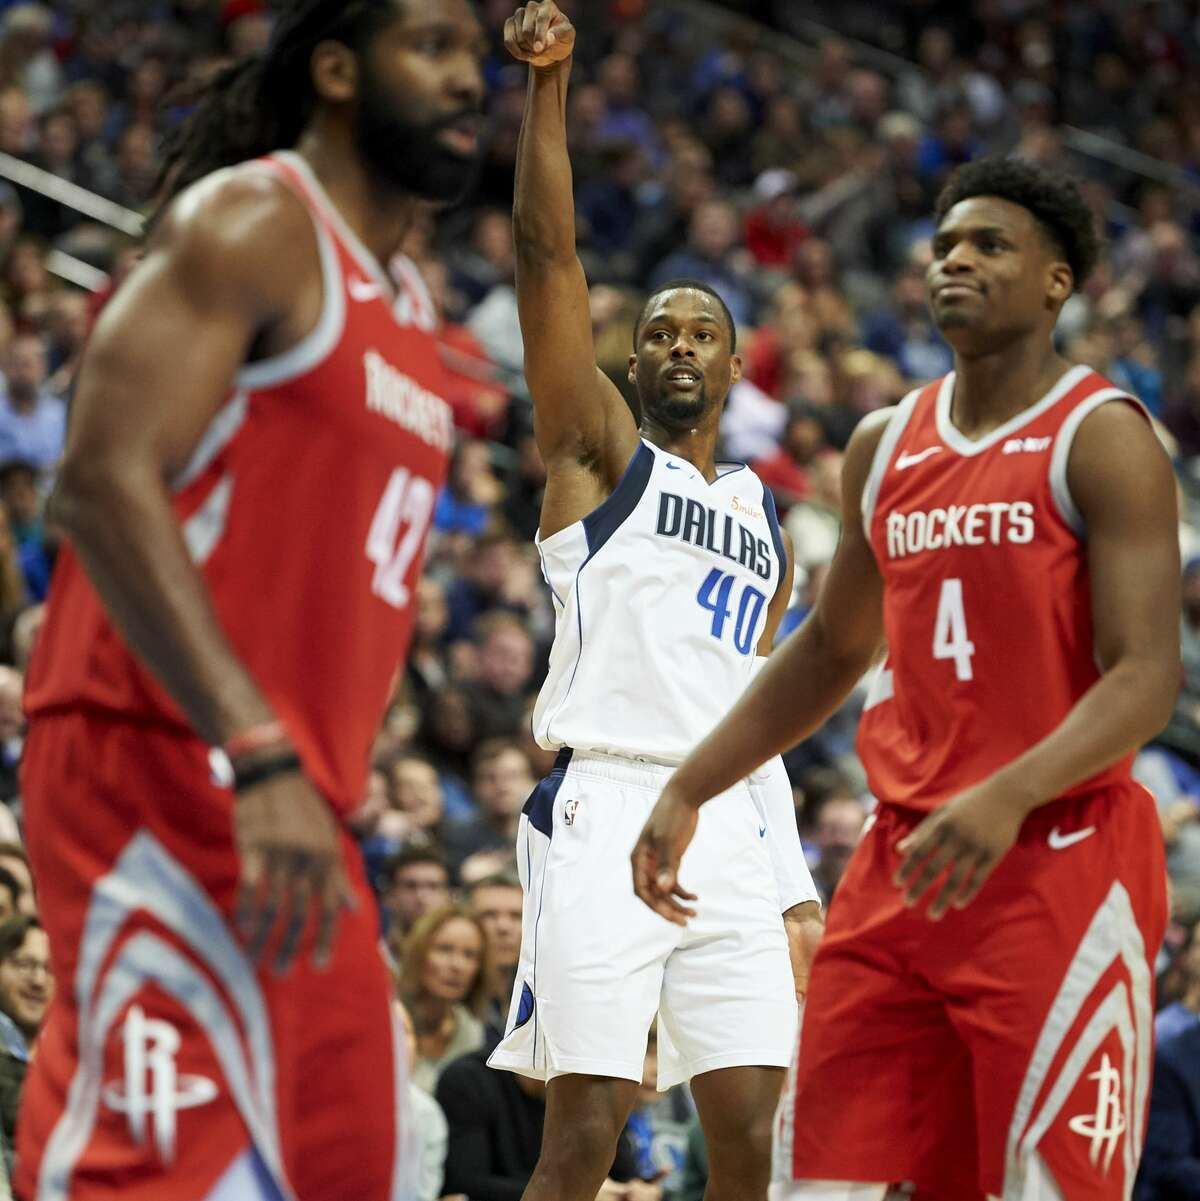 Dallas Mavericks forward Harrison Barnes (40) reacts after making a shot against the Houston Rockets during the second half of an NBA basketball game, Saturday, Dec. 8, 2018, in Dallas. (AP Photo/Cooper Neill)